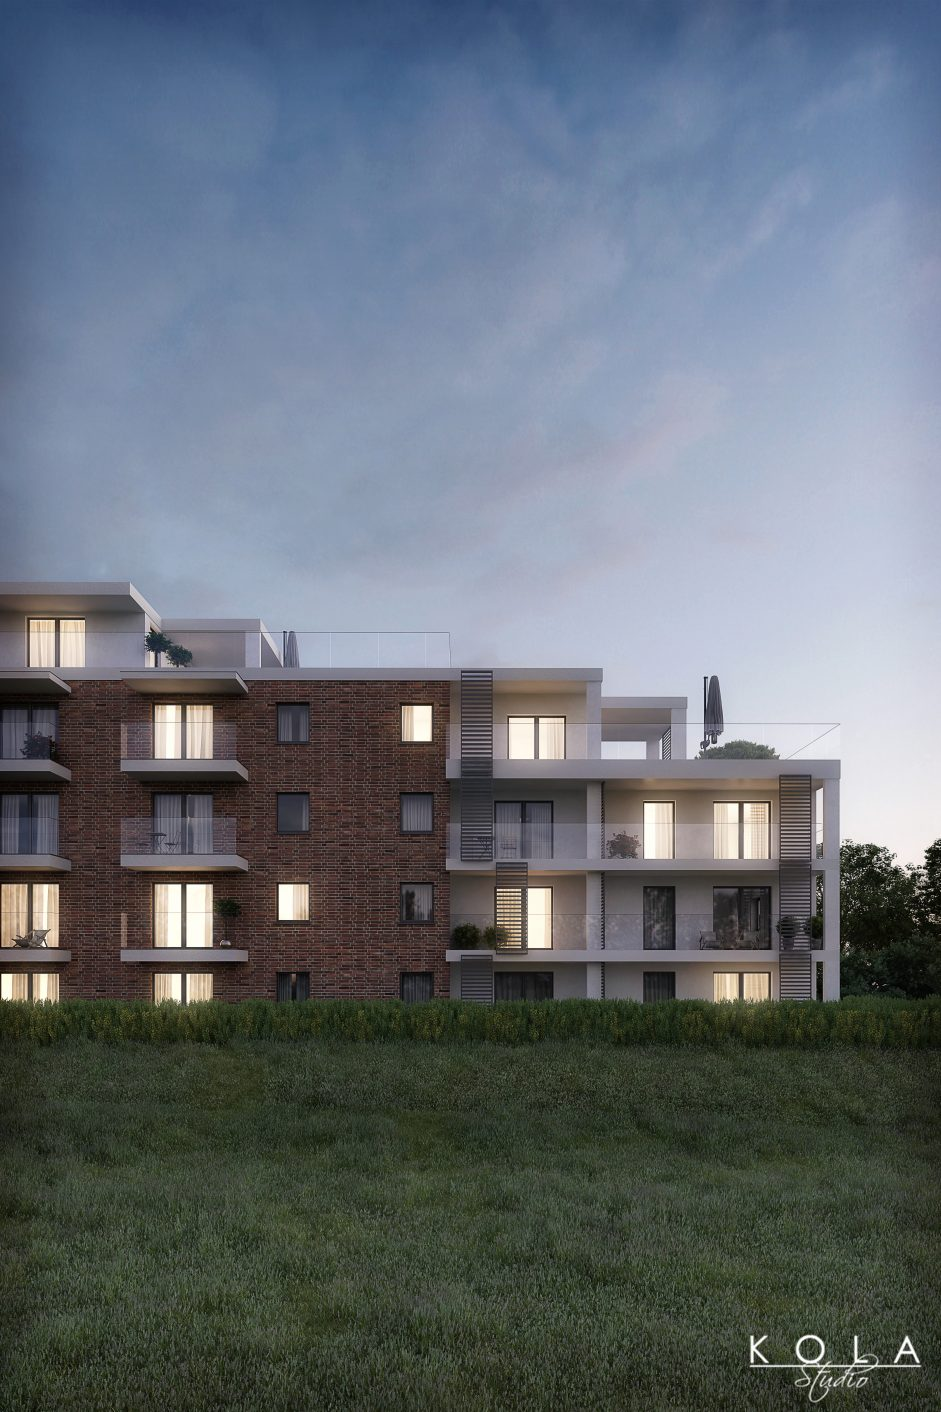 architectural visualization 3d of a multi-family building in an evening light